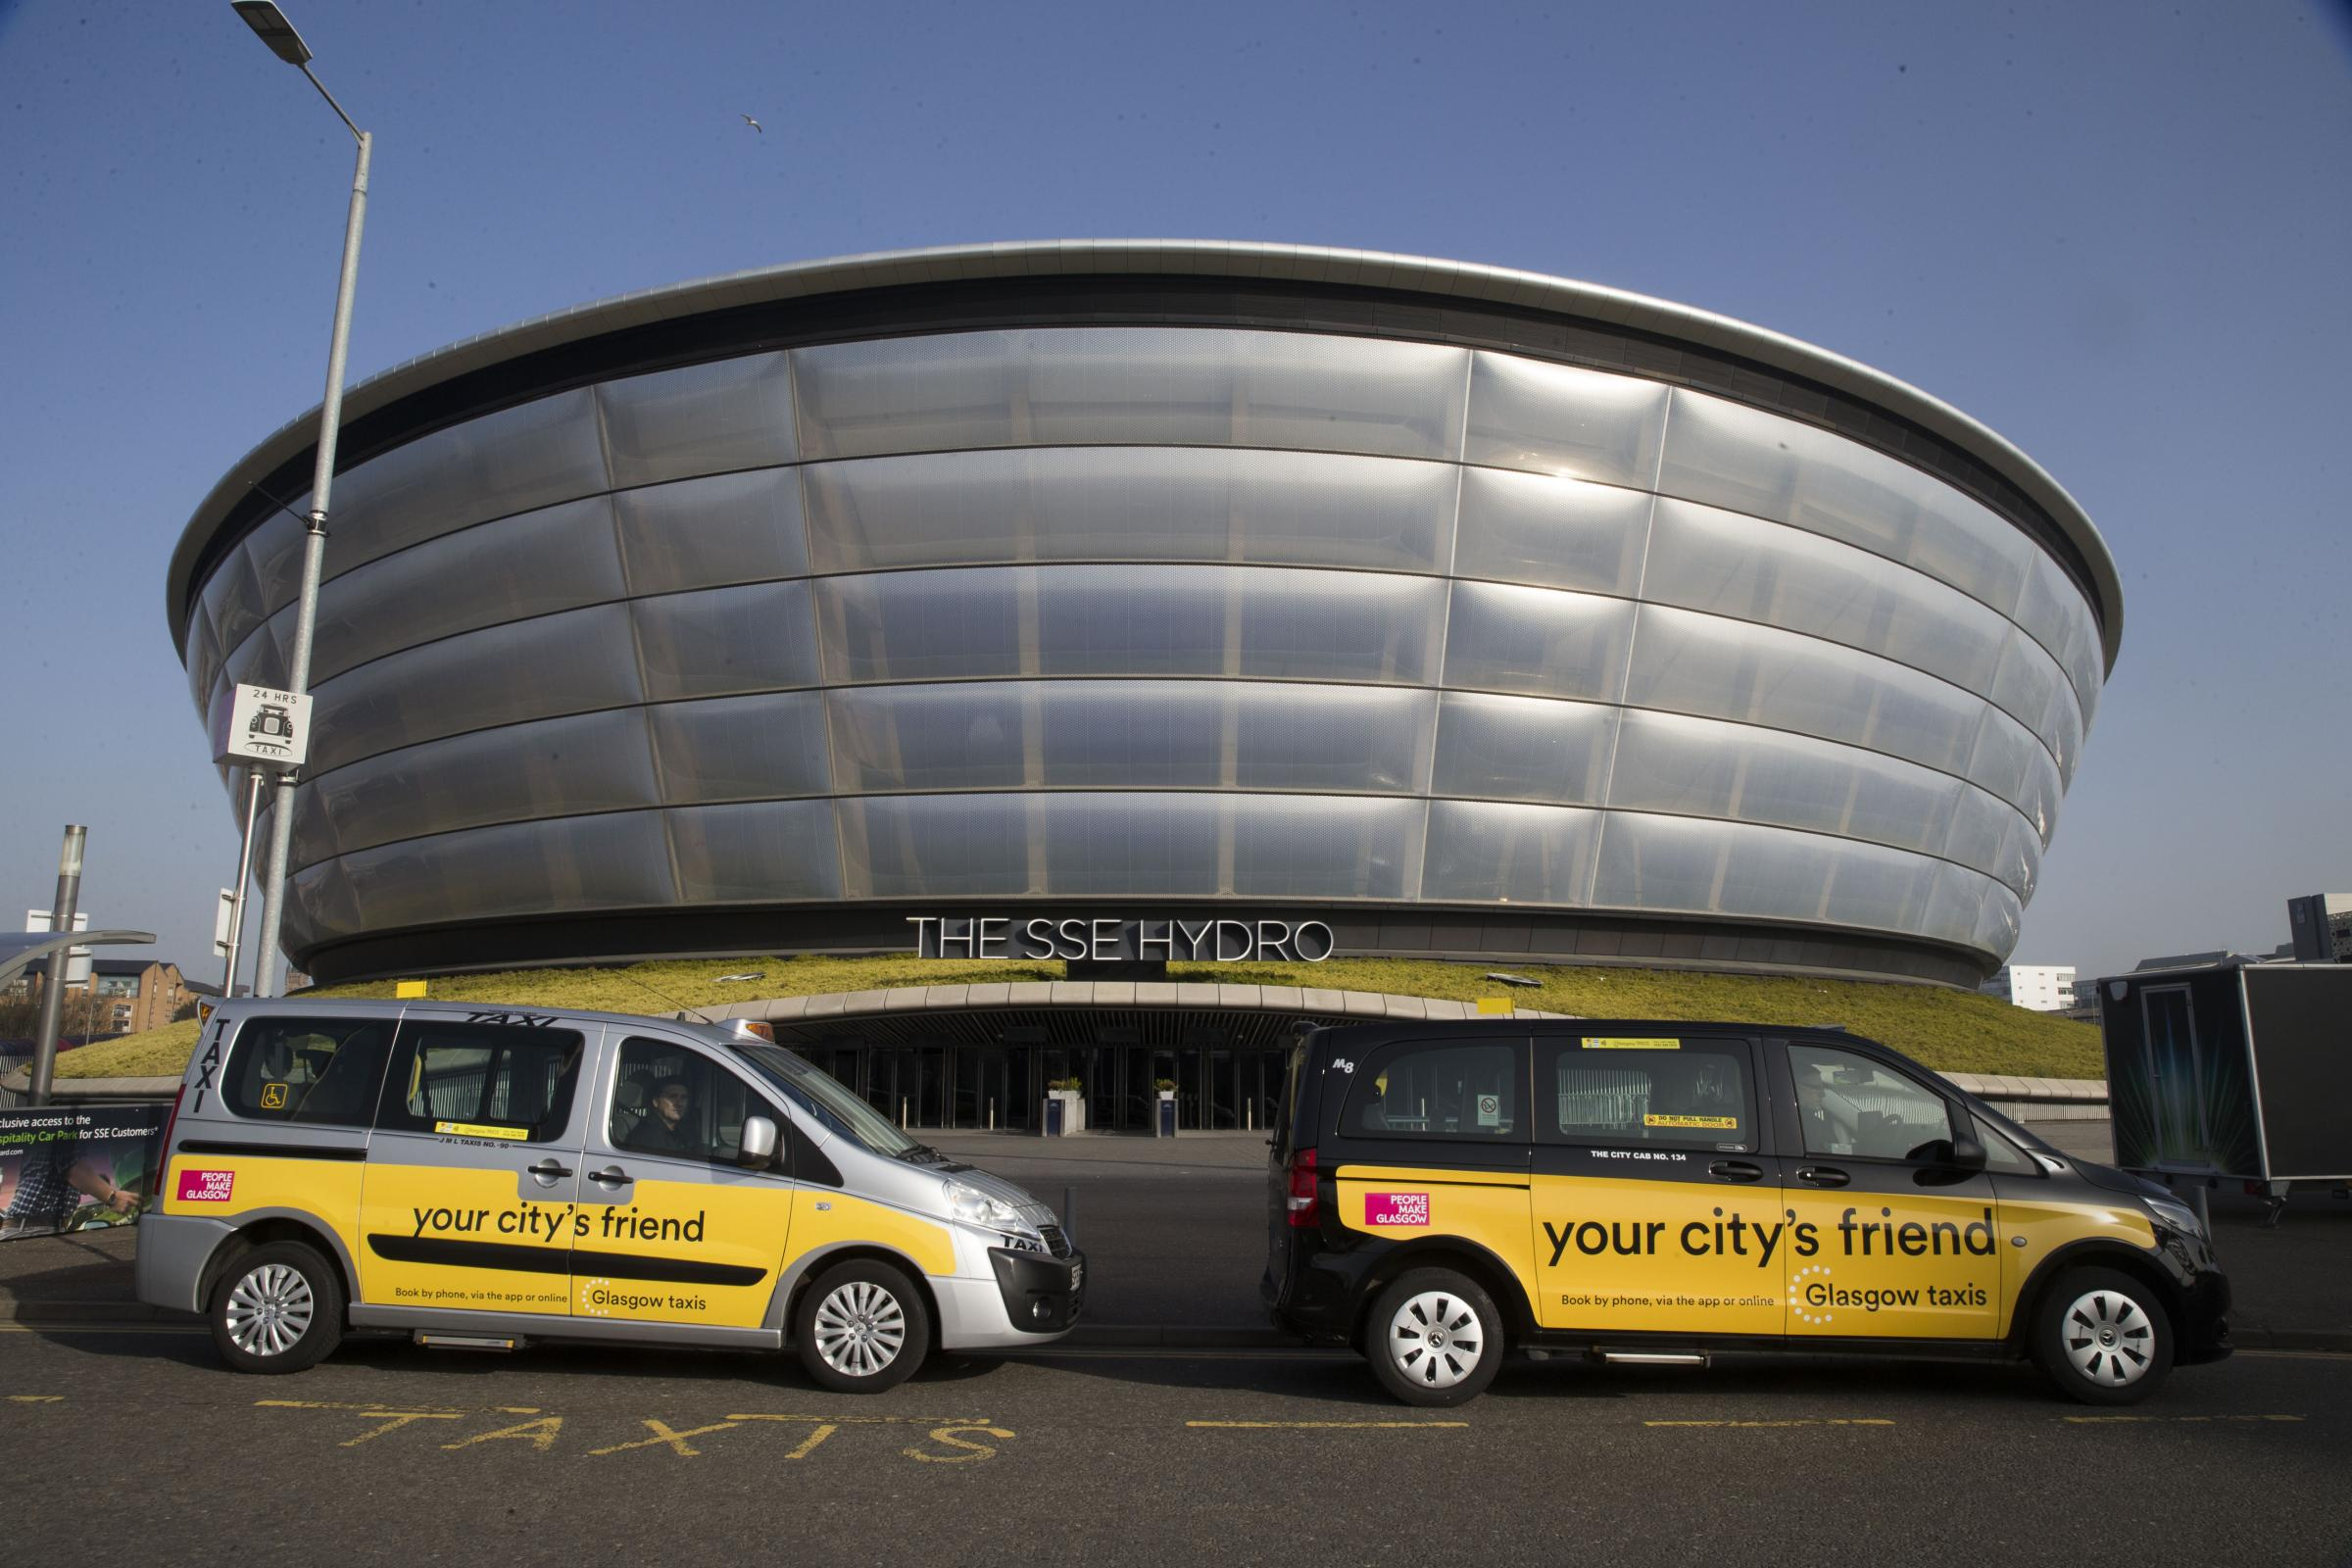 Most popular Glasgow city taxi routes revealed